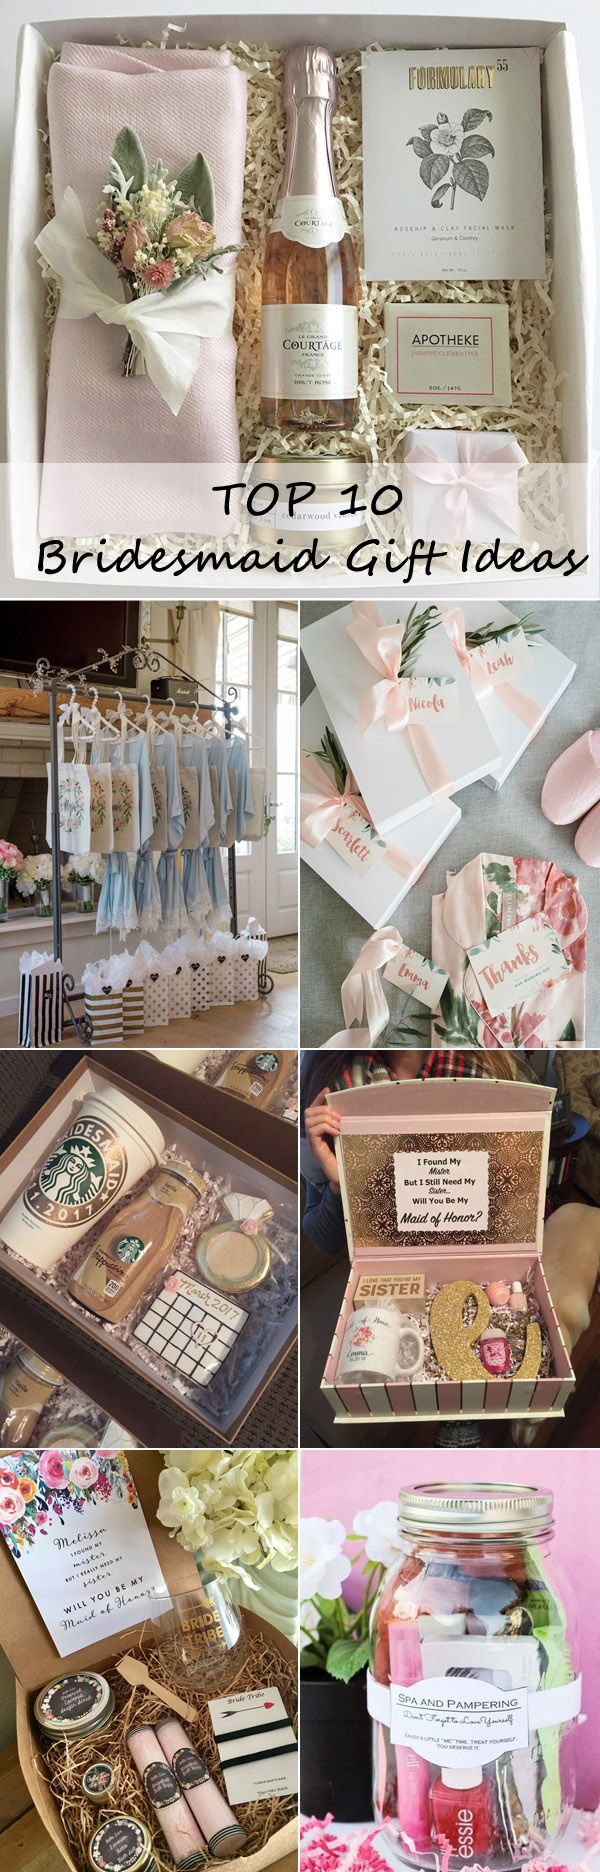 Bridal Parties Top 10 Bridesmaid Gift Ideas